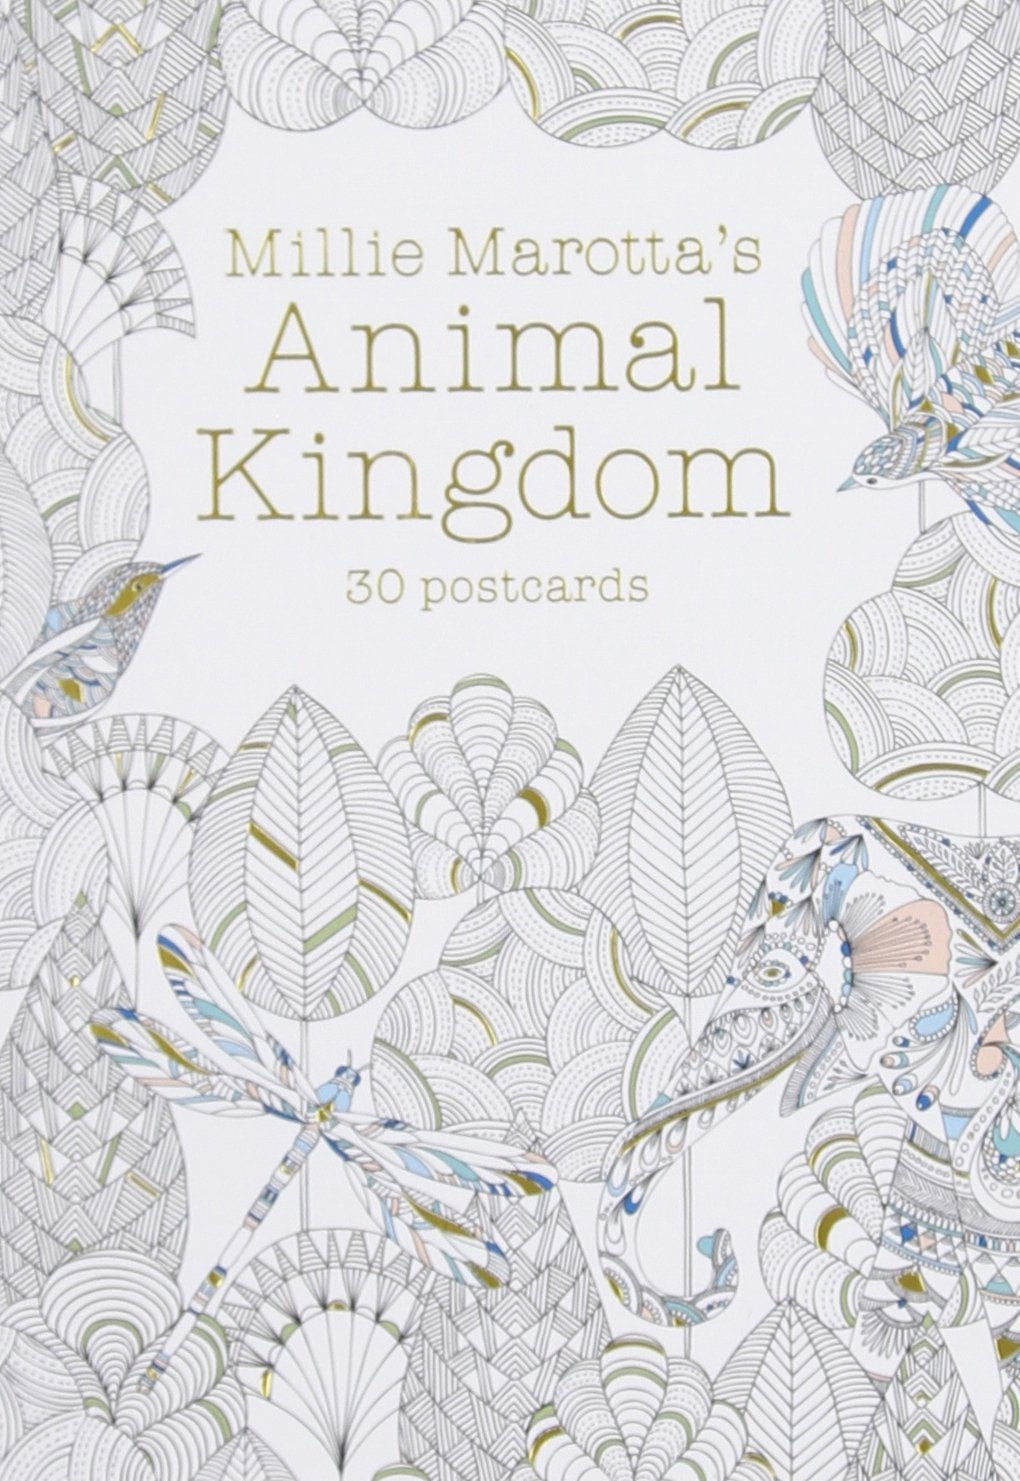 Amazon Millie Marottas Animal Kingdom Postcard Book 30 Postcards A Marotta Adult Coloring 9781454709350 Books